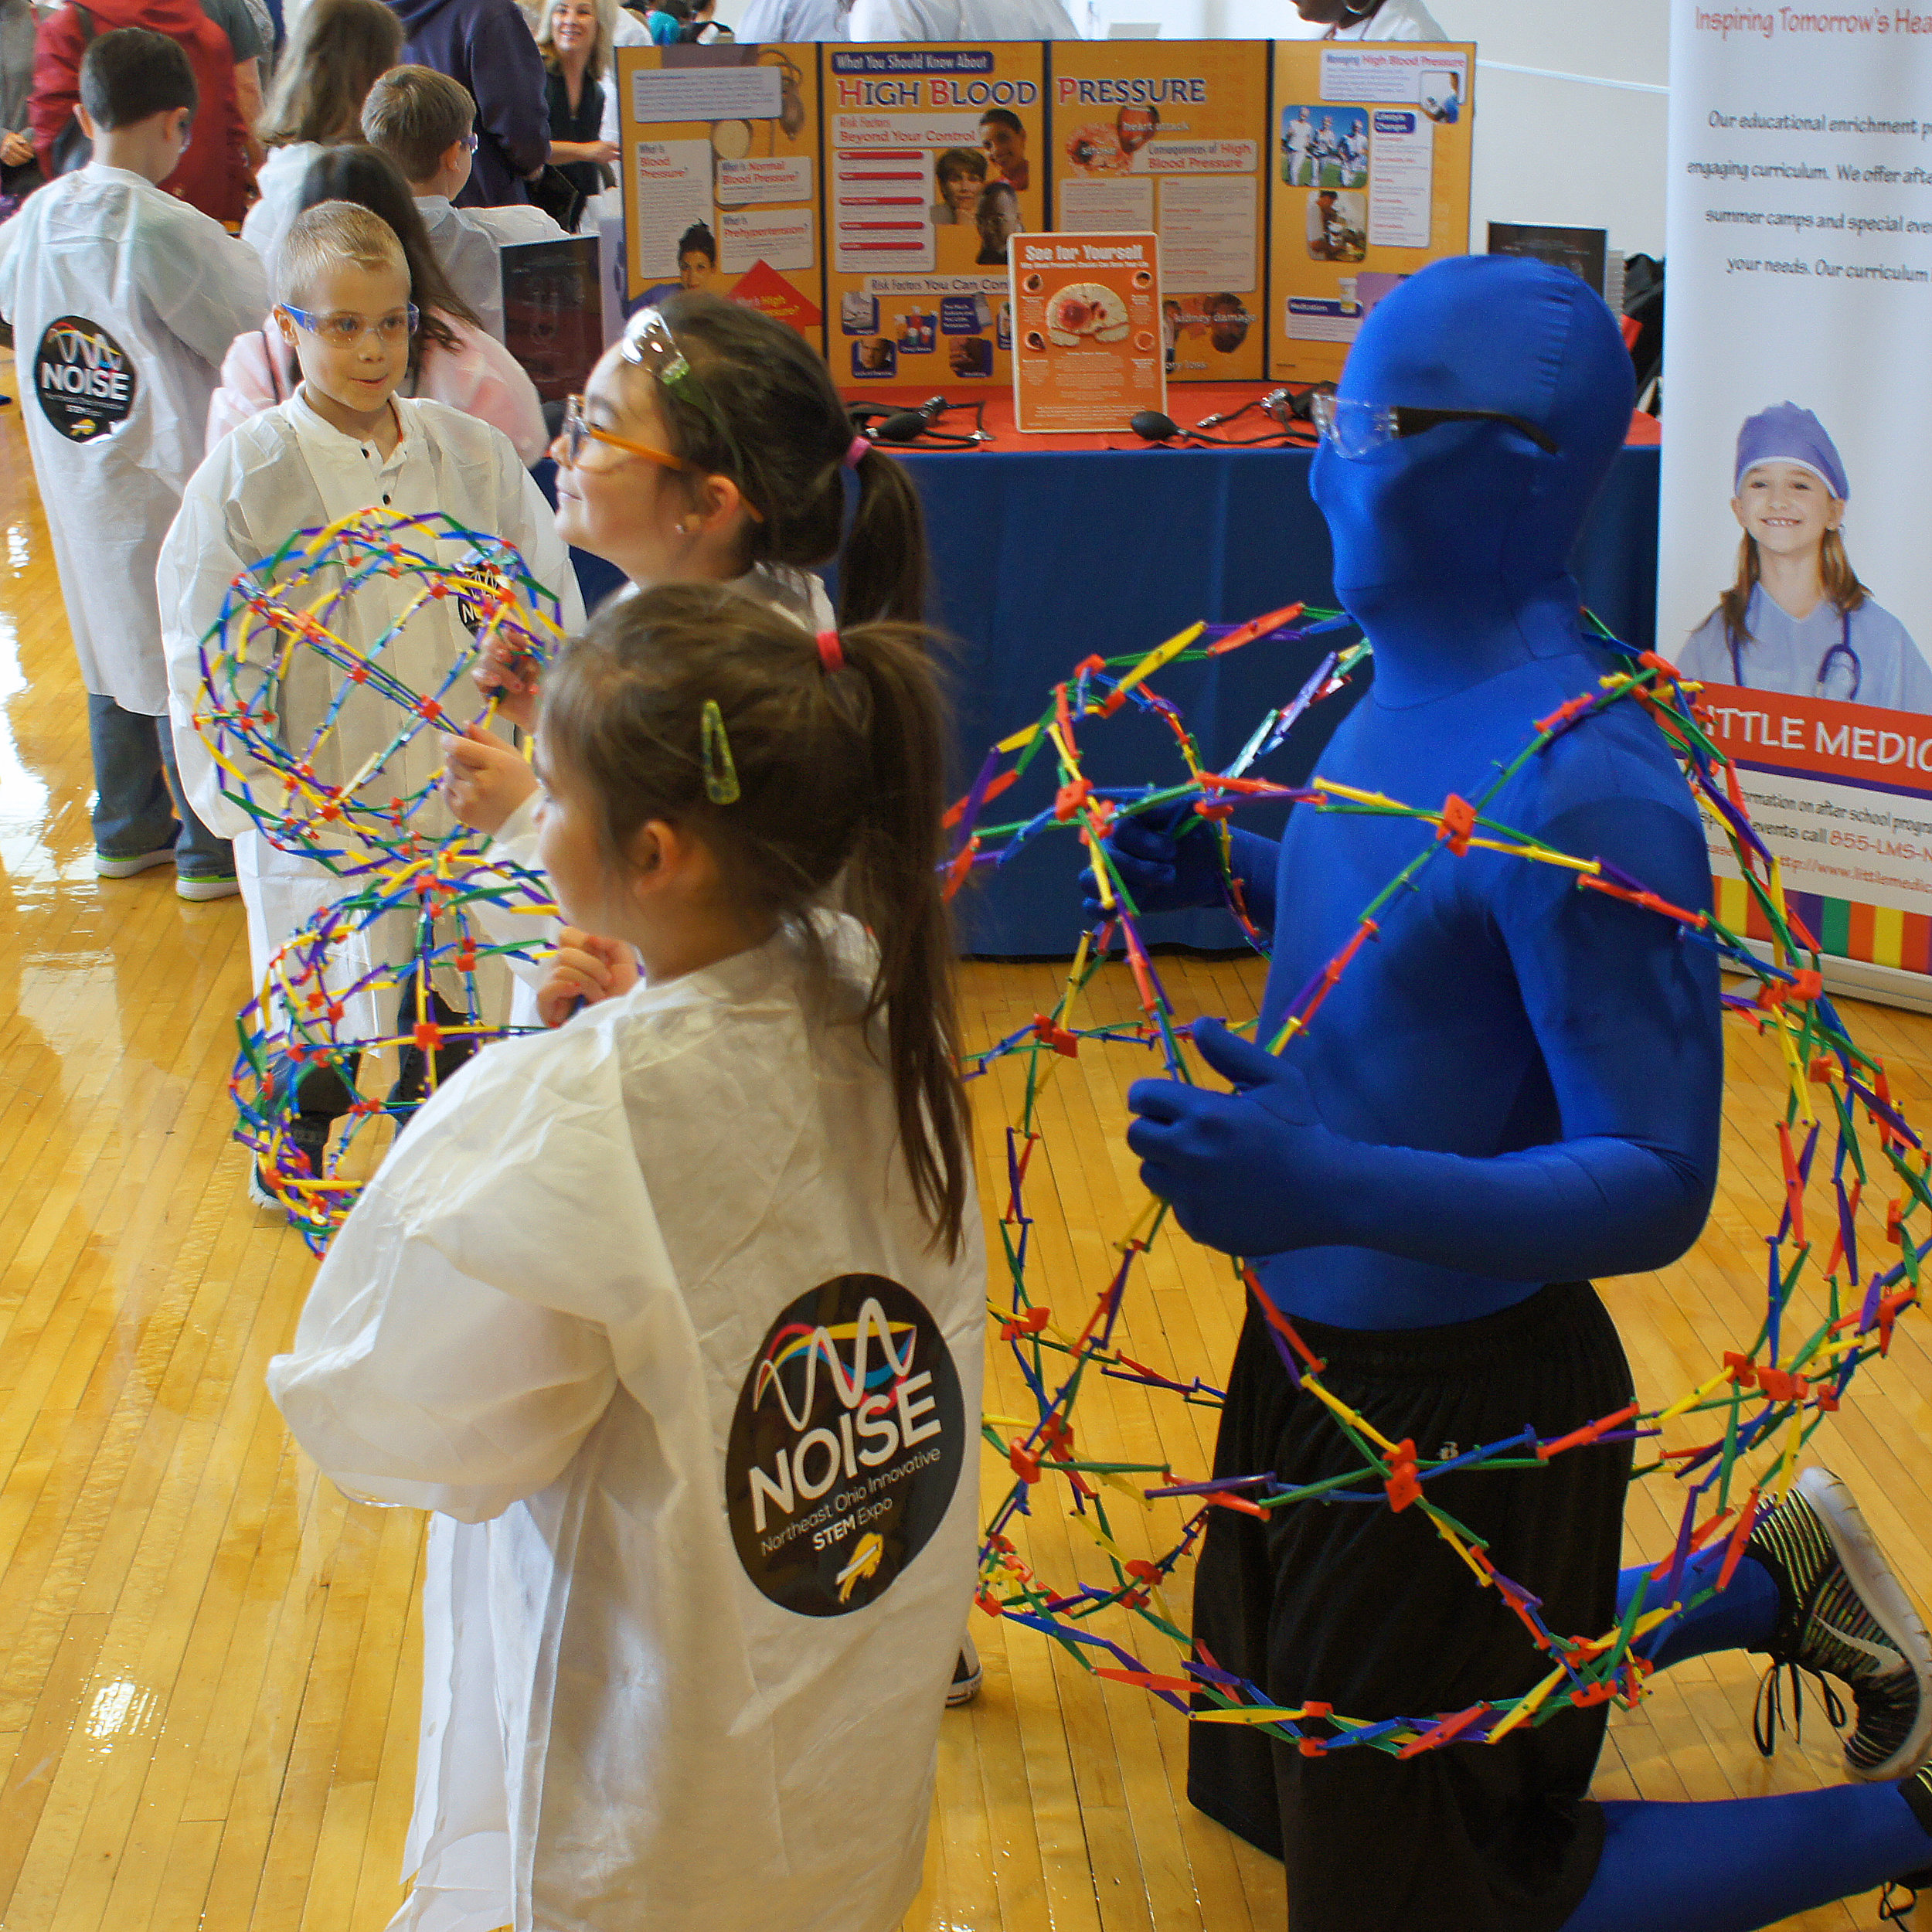 NOISE - NOISE IS A ONE DAY EXPO SHOWCASING STEM (SCIENCE, TECHNOLOGY, ENGINEERING, AND MATH)THE EVENT WILL BE HELD AT THE BEACHWOOD HIGH SCHOOL ON APRIL 13, 2019 FROM 11:00 AM - 4:00PM